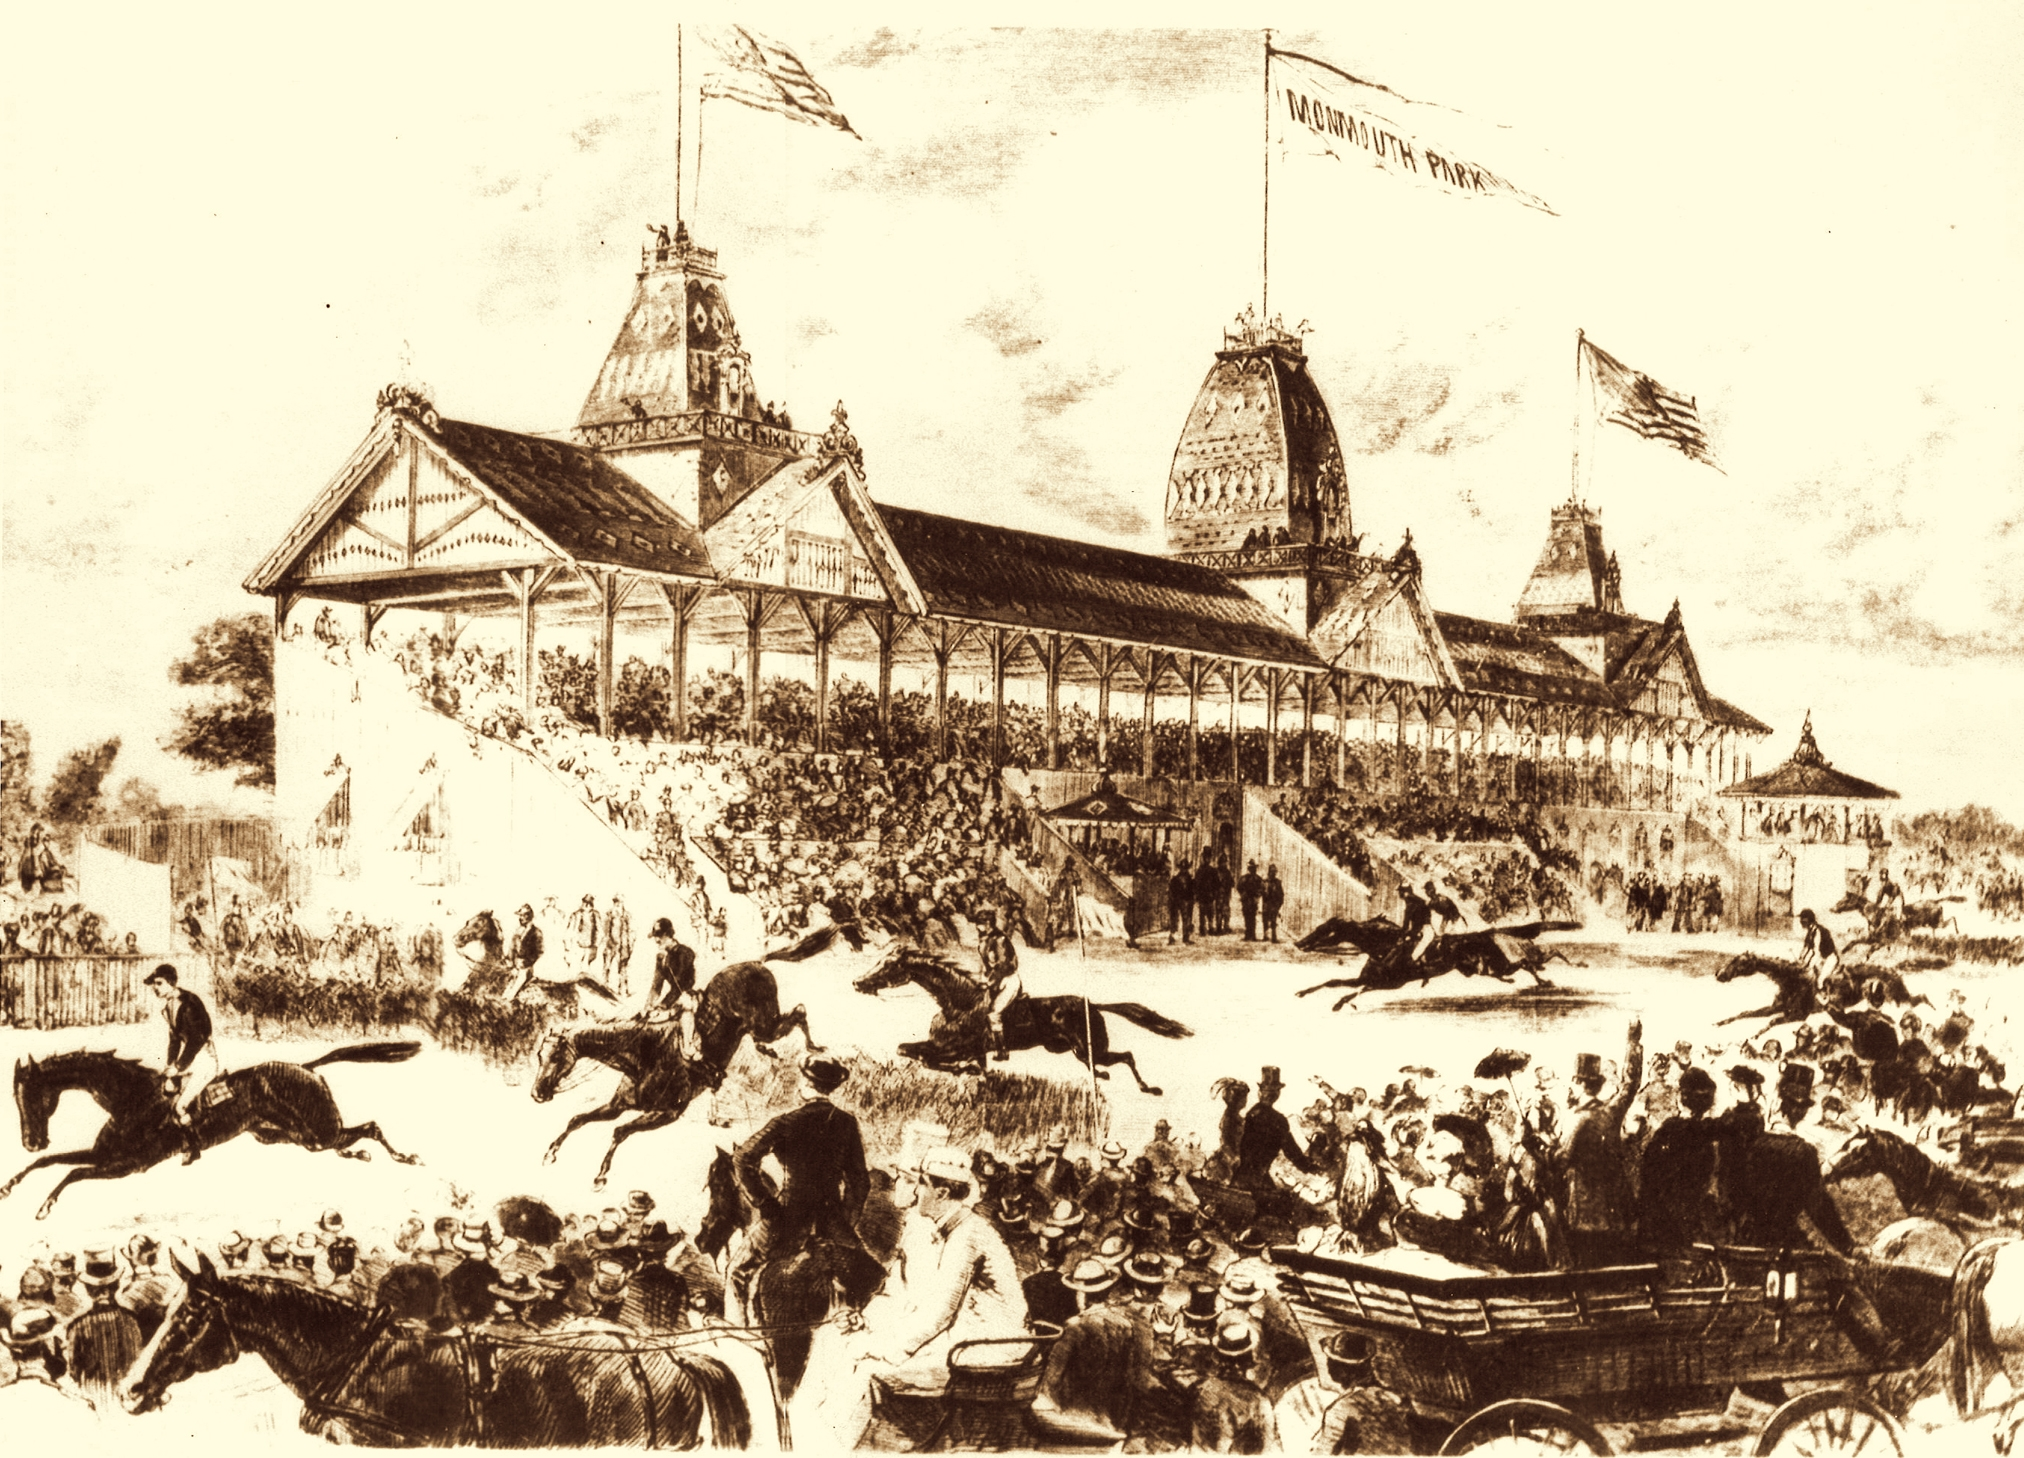 Graphic Illustration of Monmouth Park in Oceanport NJ from early 1900